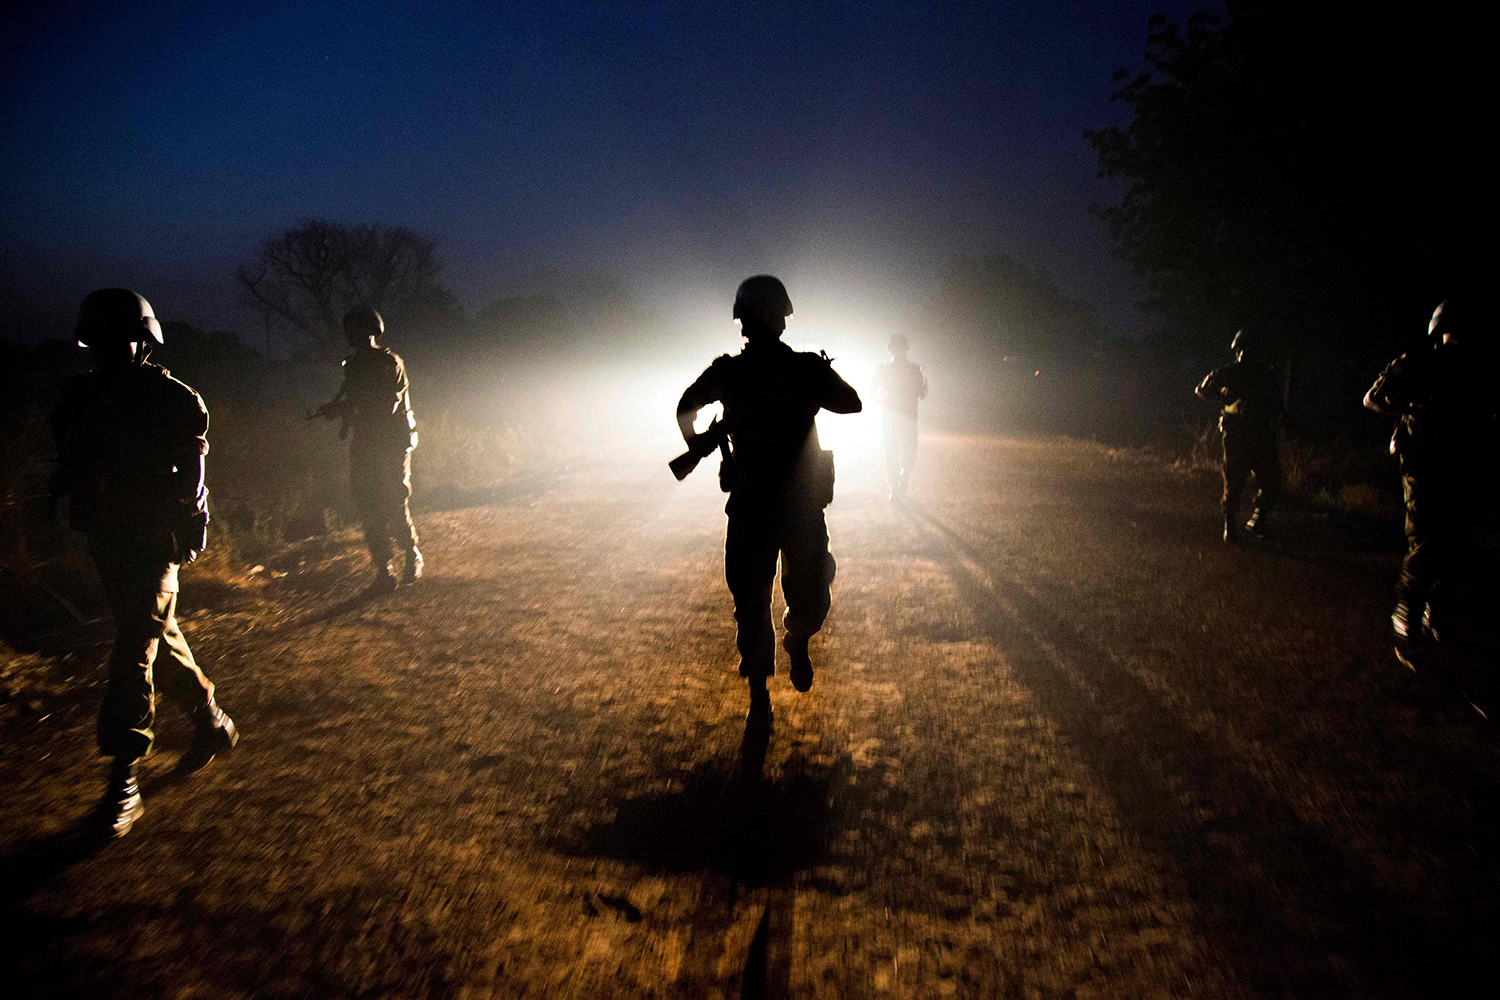 TOPSHOT - Peacekeeper troops from Ethiopia and deployed in the United Nations (UN) Interim Security Force for Abyei (UNISFA) patrol at night in Abyei town, Abyei state, on December 14, 2016. The Abyei Administrative Area is a disputed territory between Sudan and South Sudan with a longstanding intercommunal tensions between the Ngok-Dinka ethnic majority and the pastoral Misseriya population, who migrate through the area seasonally from the north. An attack by Government of Sudan forces on Abyei in May 2011 displaced the majority of the Ngok Dinka population, approximately 105,000 people to areas south of the River Kiir, which became overcrowded and are suffering a huge competition over natural resources. / AFP PHOTO / Albert Gonzalez Farran / TT / kod 444